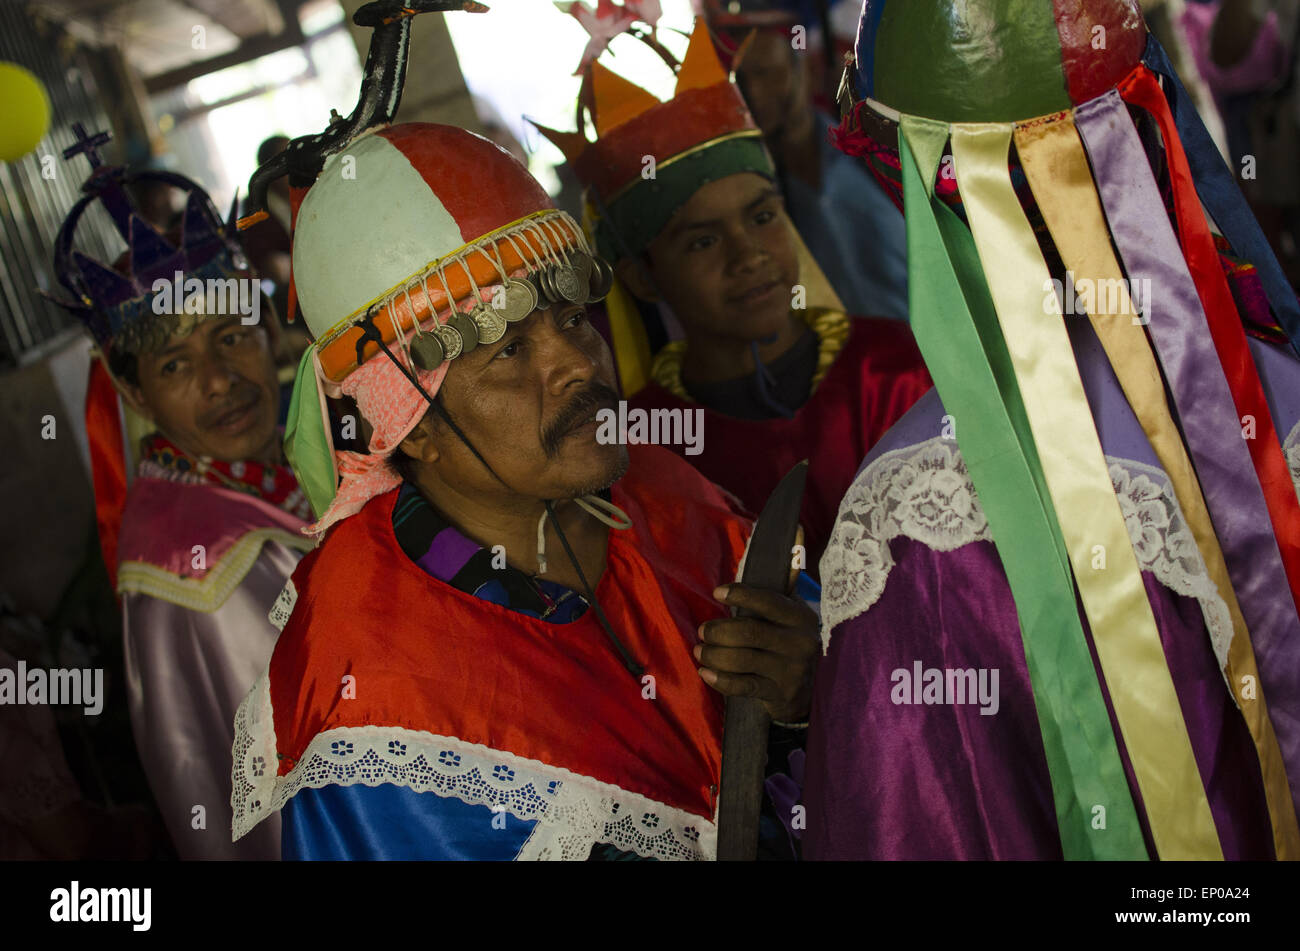 Panchimalco san salvador el salvador 10th may 2015 members of panchimalco san salvador el salvador 10th may 2015 members of the historiantes perform a traditional dance on may 10 2015 residents and visitors sciox Gallery